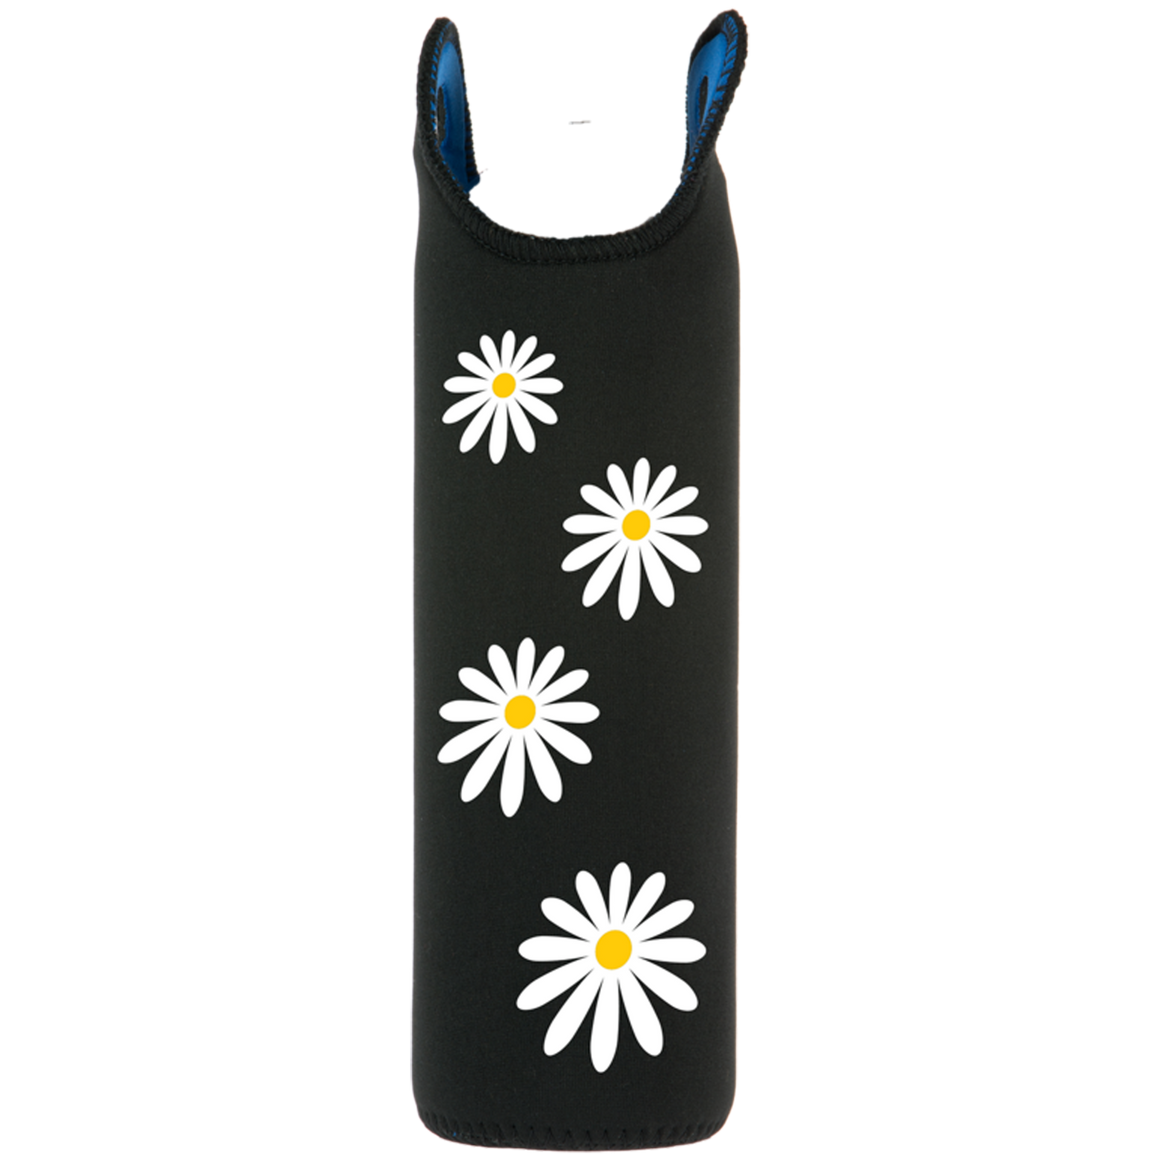 Neo Design - Daisies Protective Sleeve (500/750 ml)